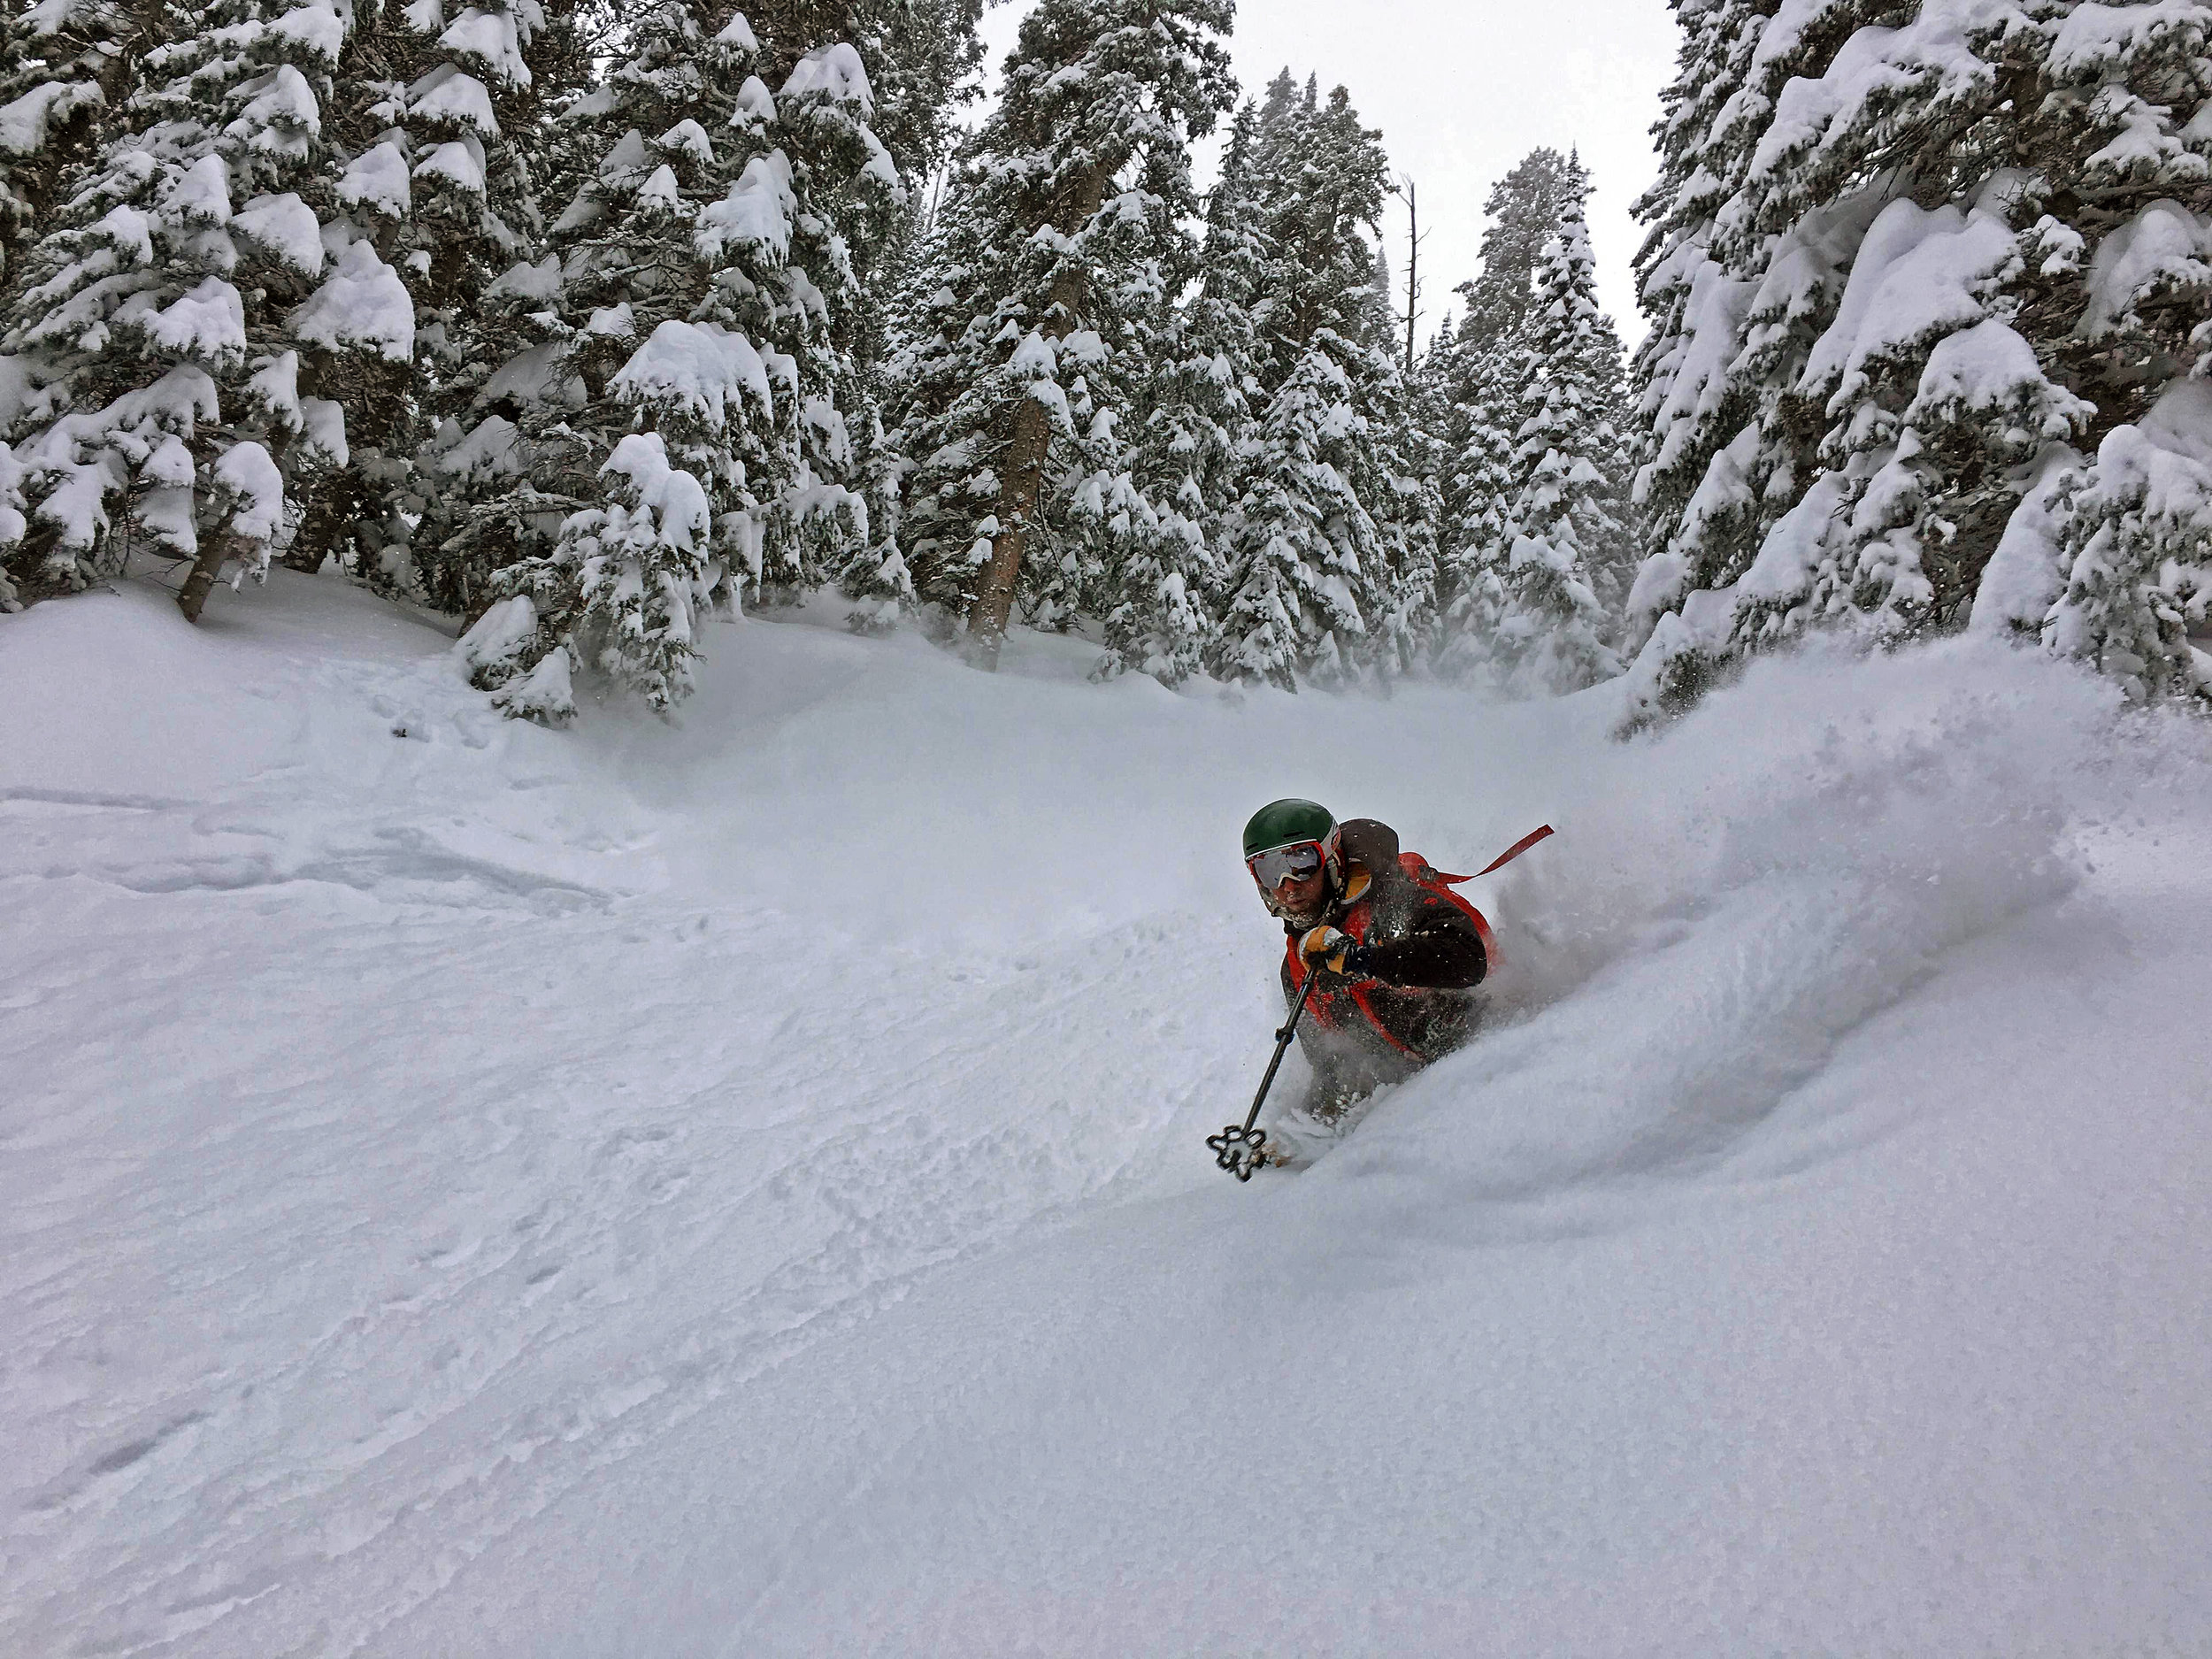 Deep powder on Parrot Peak.